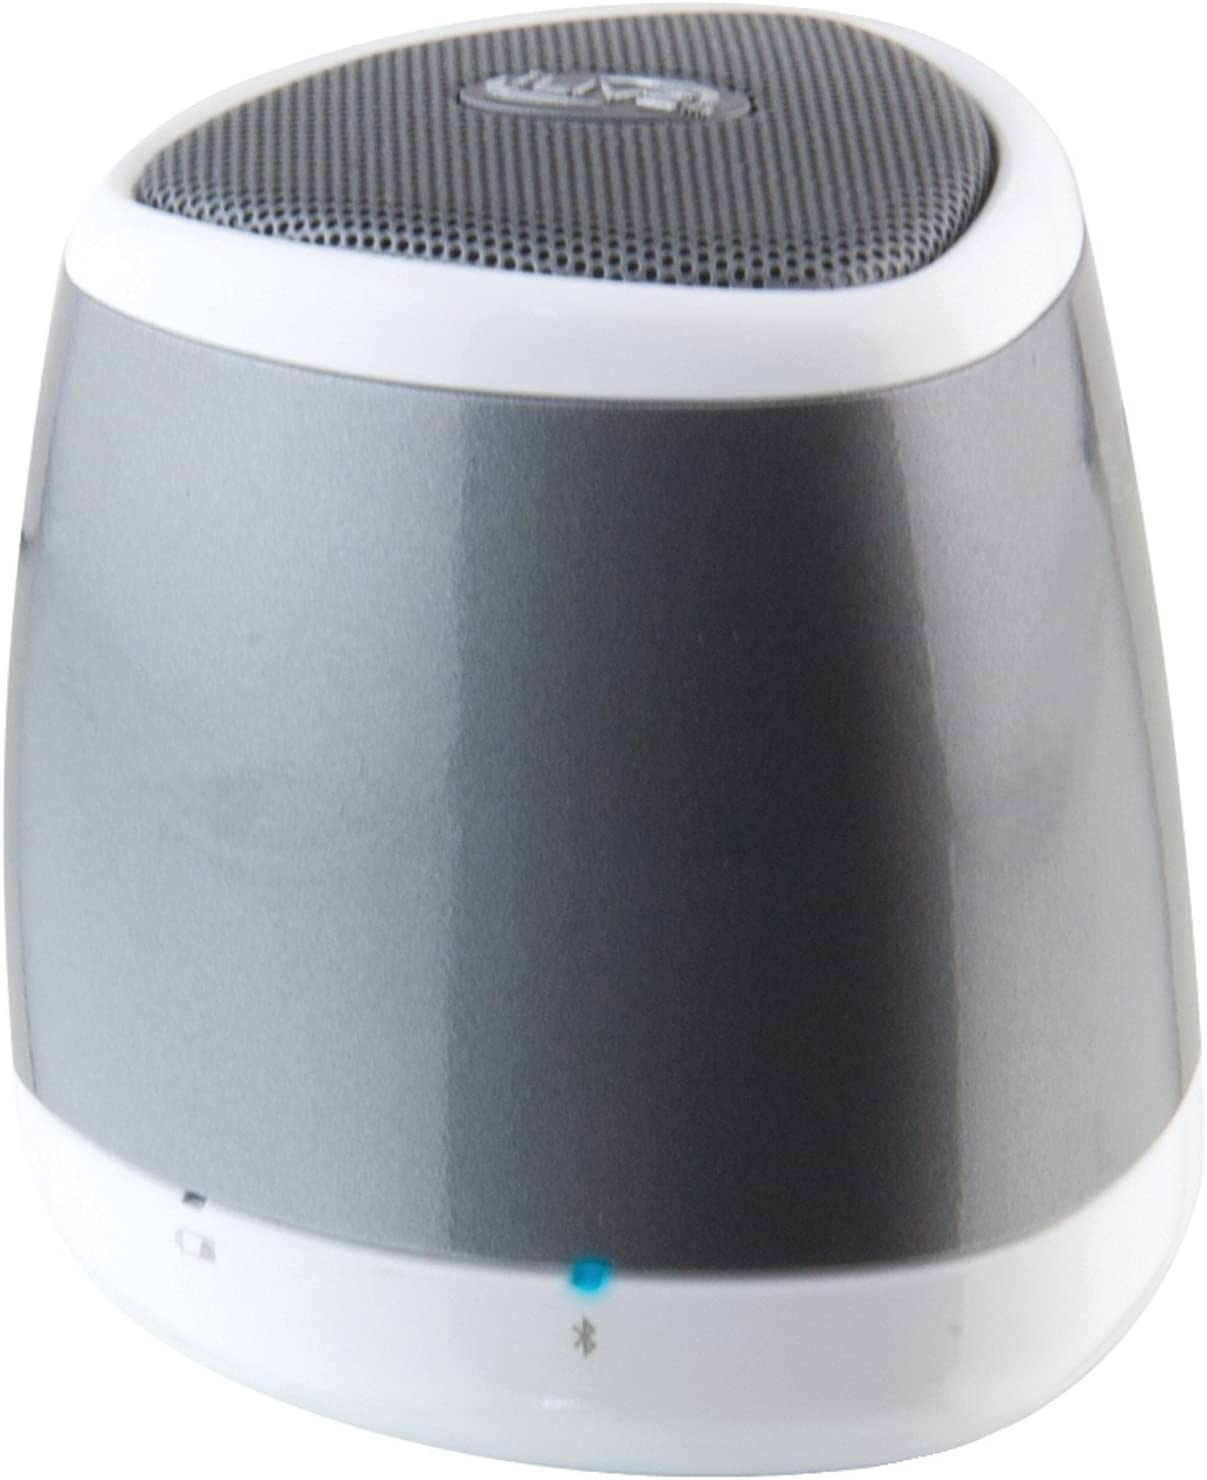 iLive Isb9s Blue Portable Bluetooth Speaker (Silver)